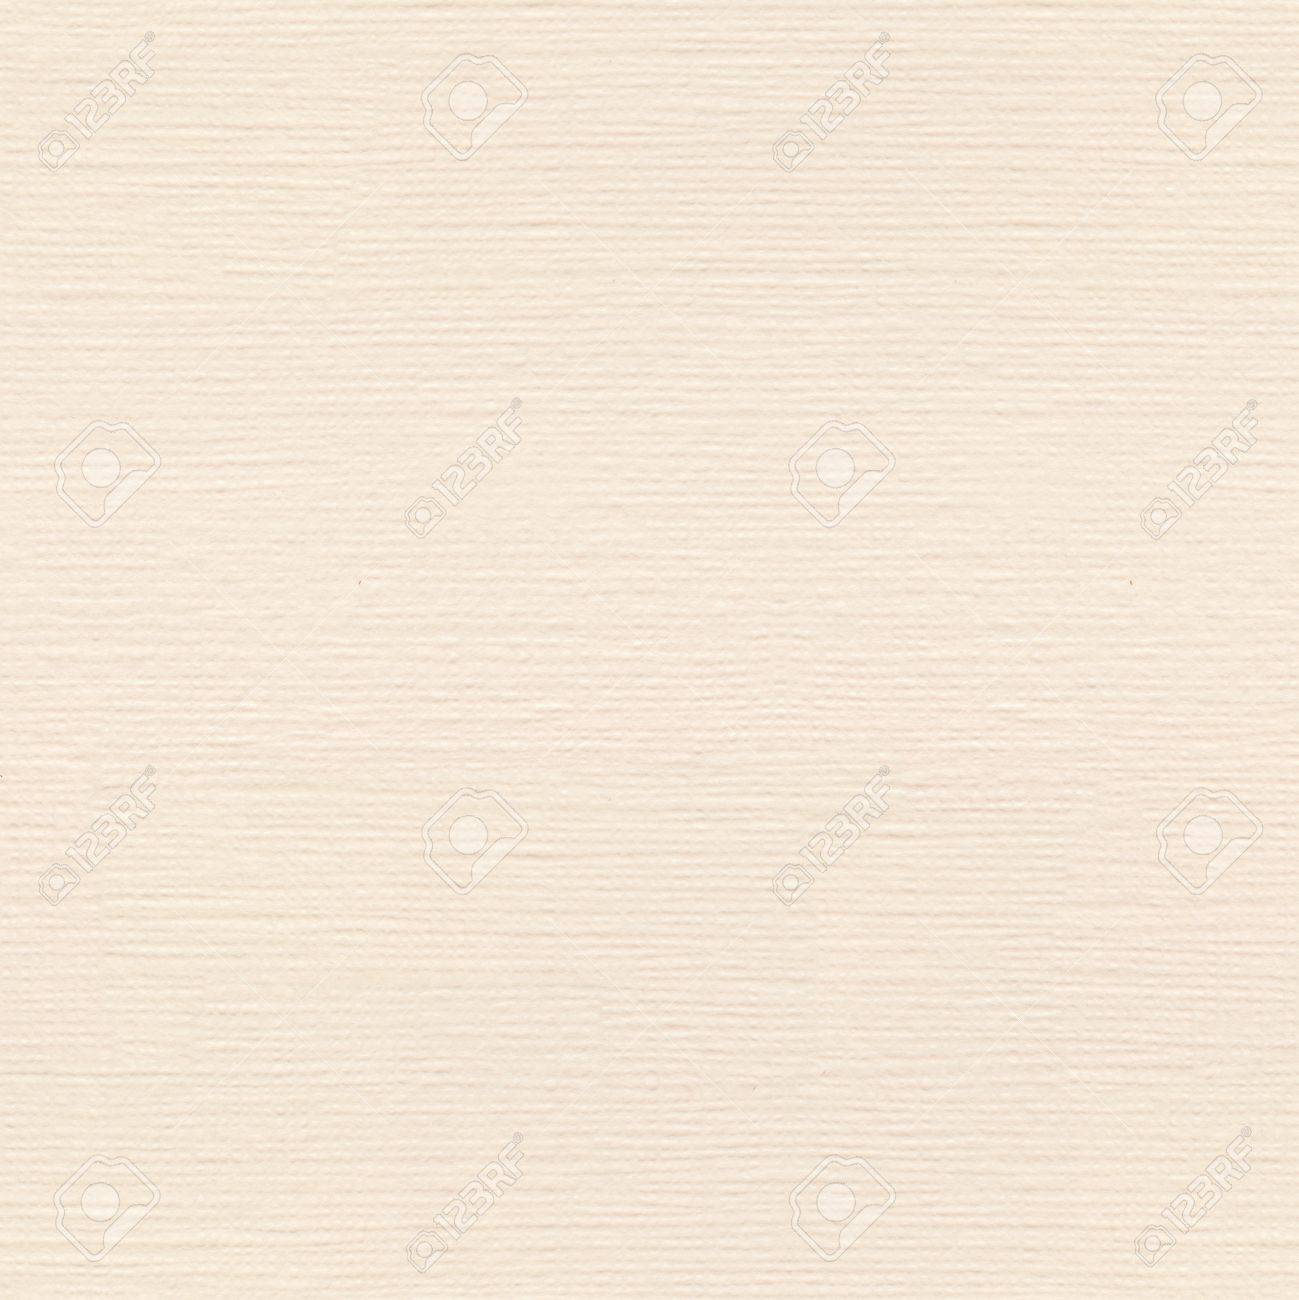 32   Beauty Cream Fabric Texture for Cream Fabric Texture Seamless  55dqh